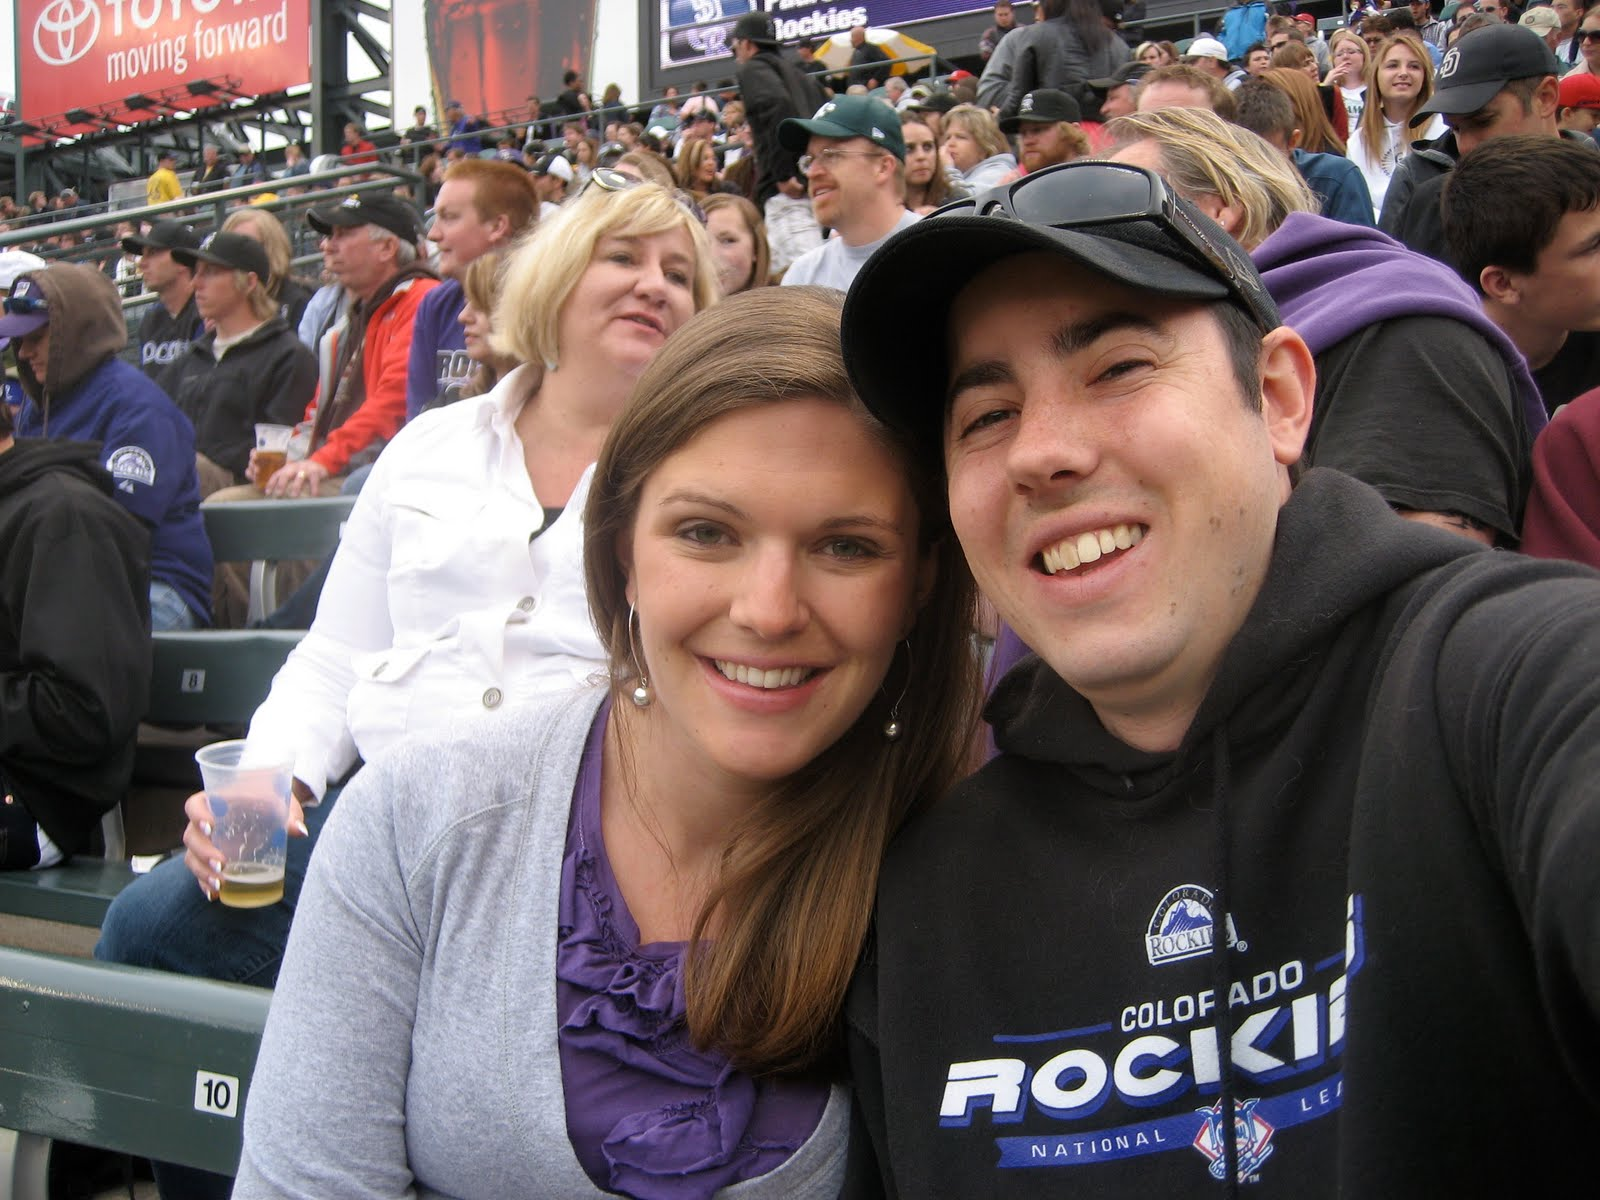 First date at a baseball game